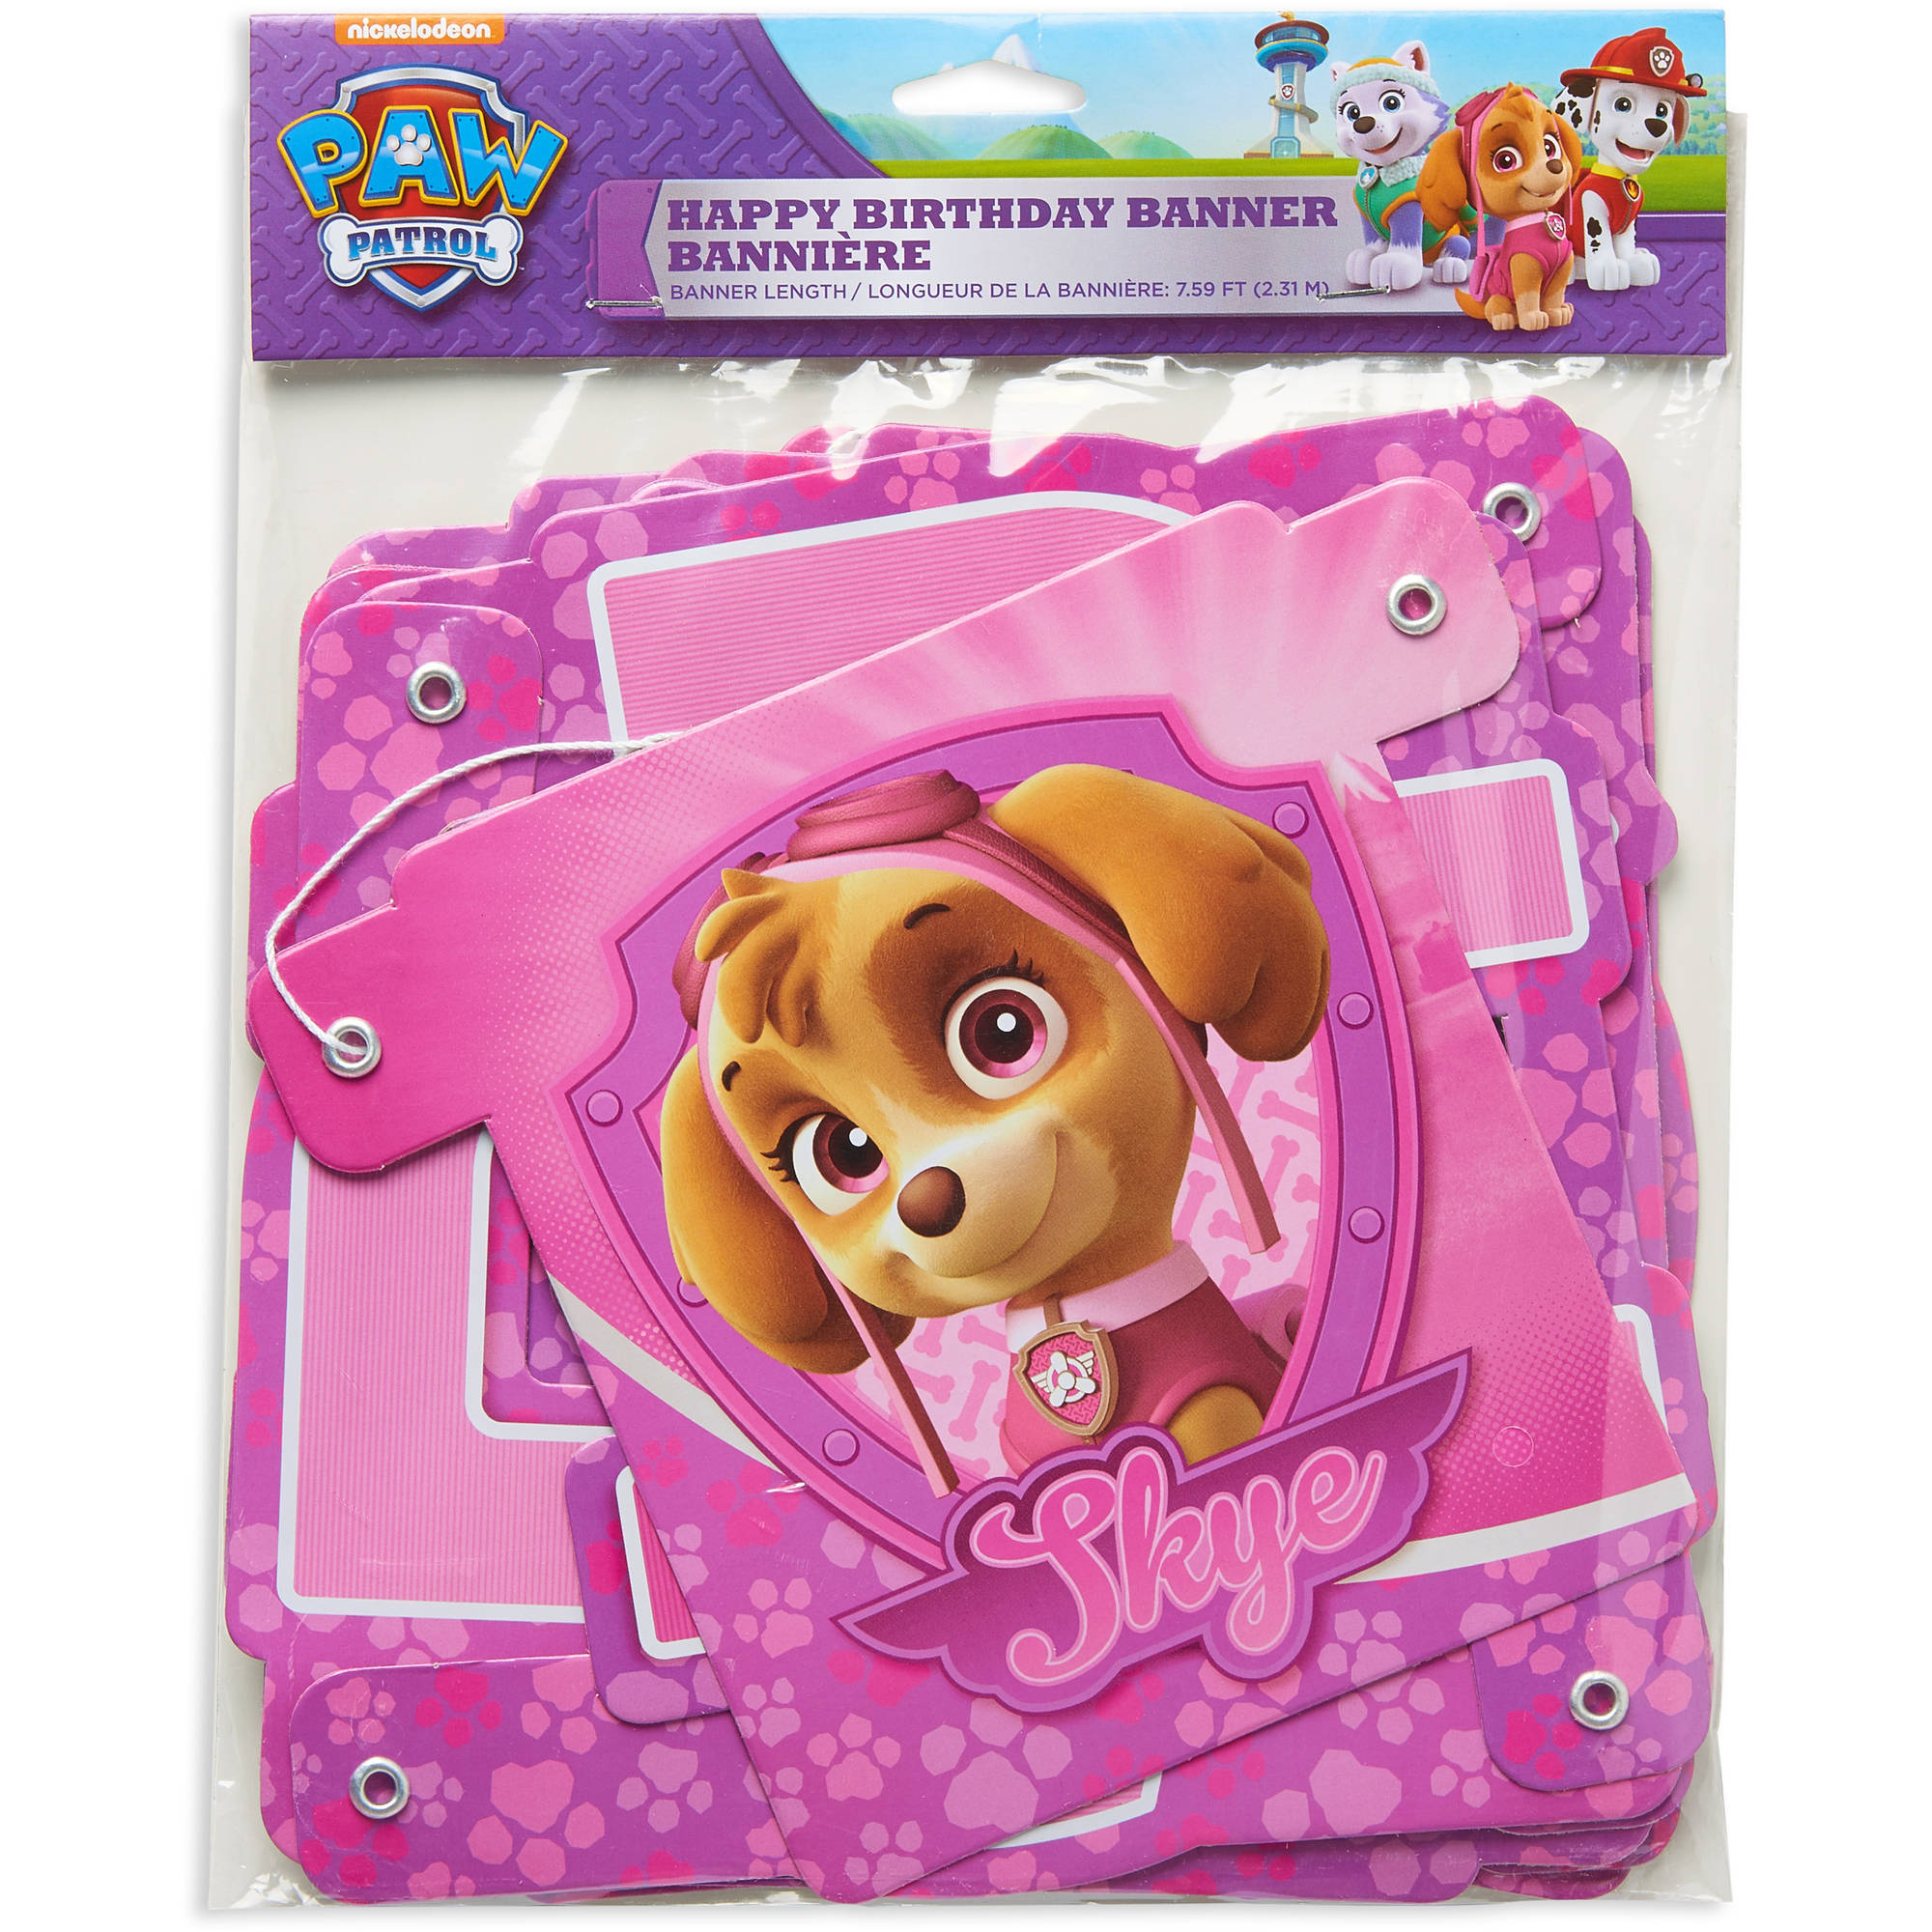 PAW Patrol Pink Birthday Party Decoration Banner 759 Ft